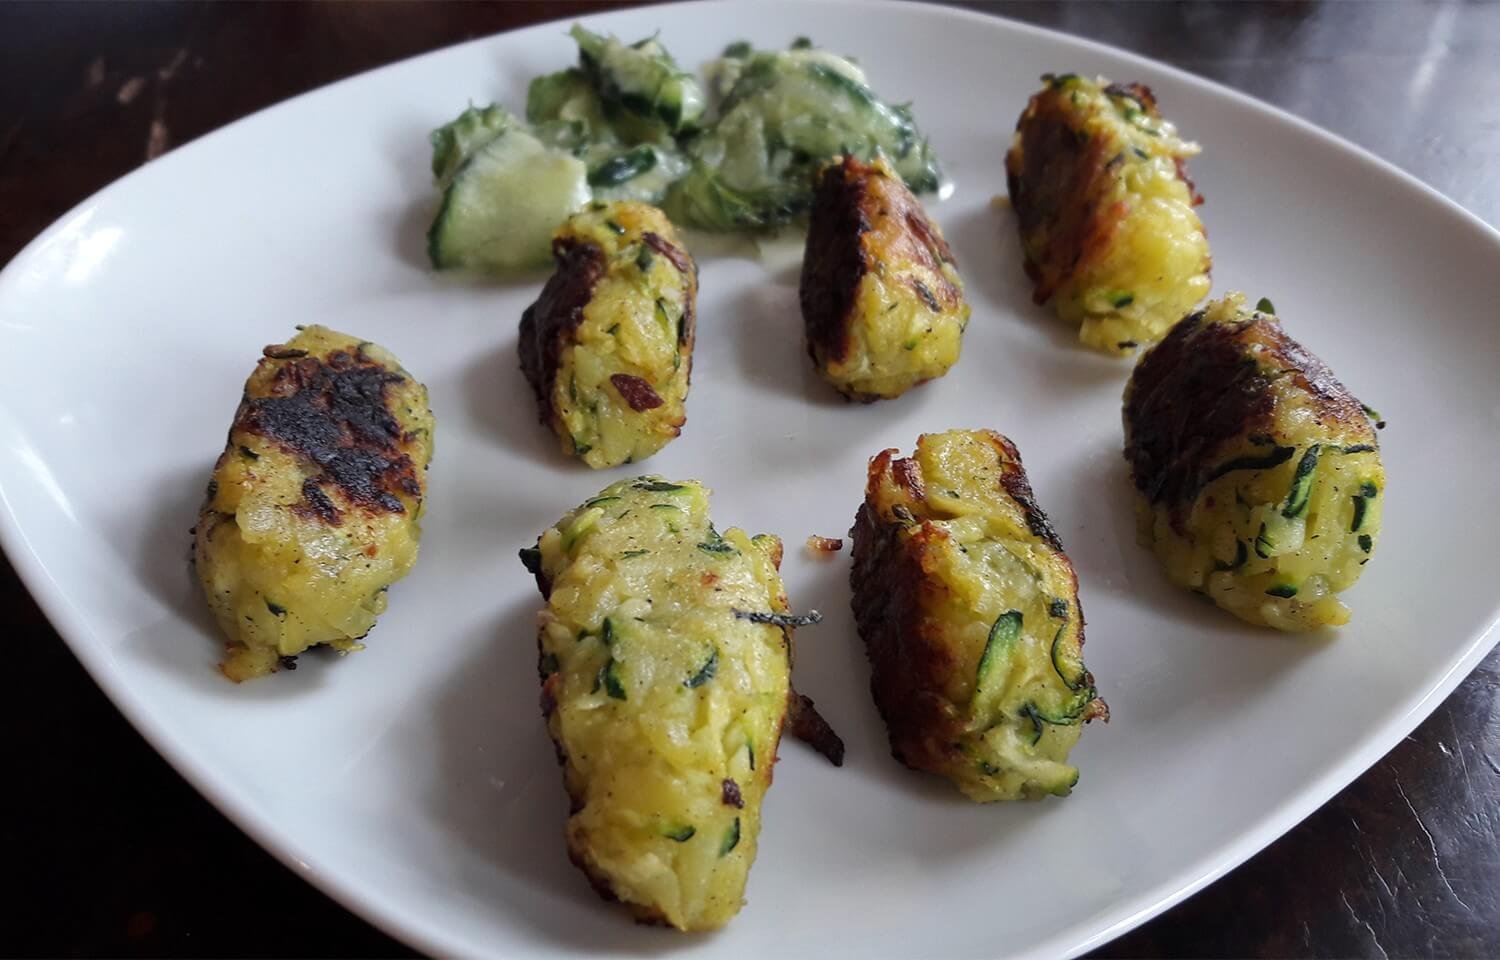 Croquettes with cucumber salad